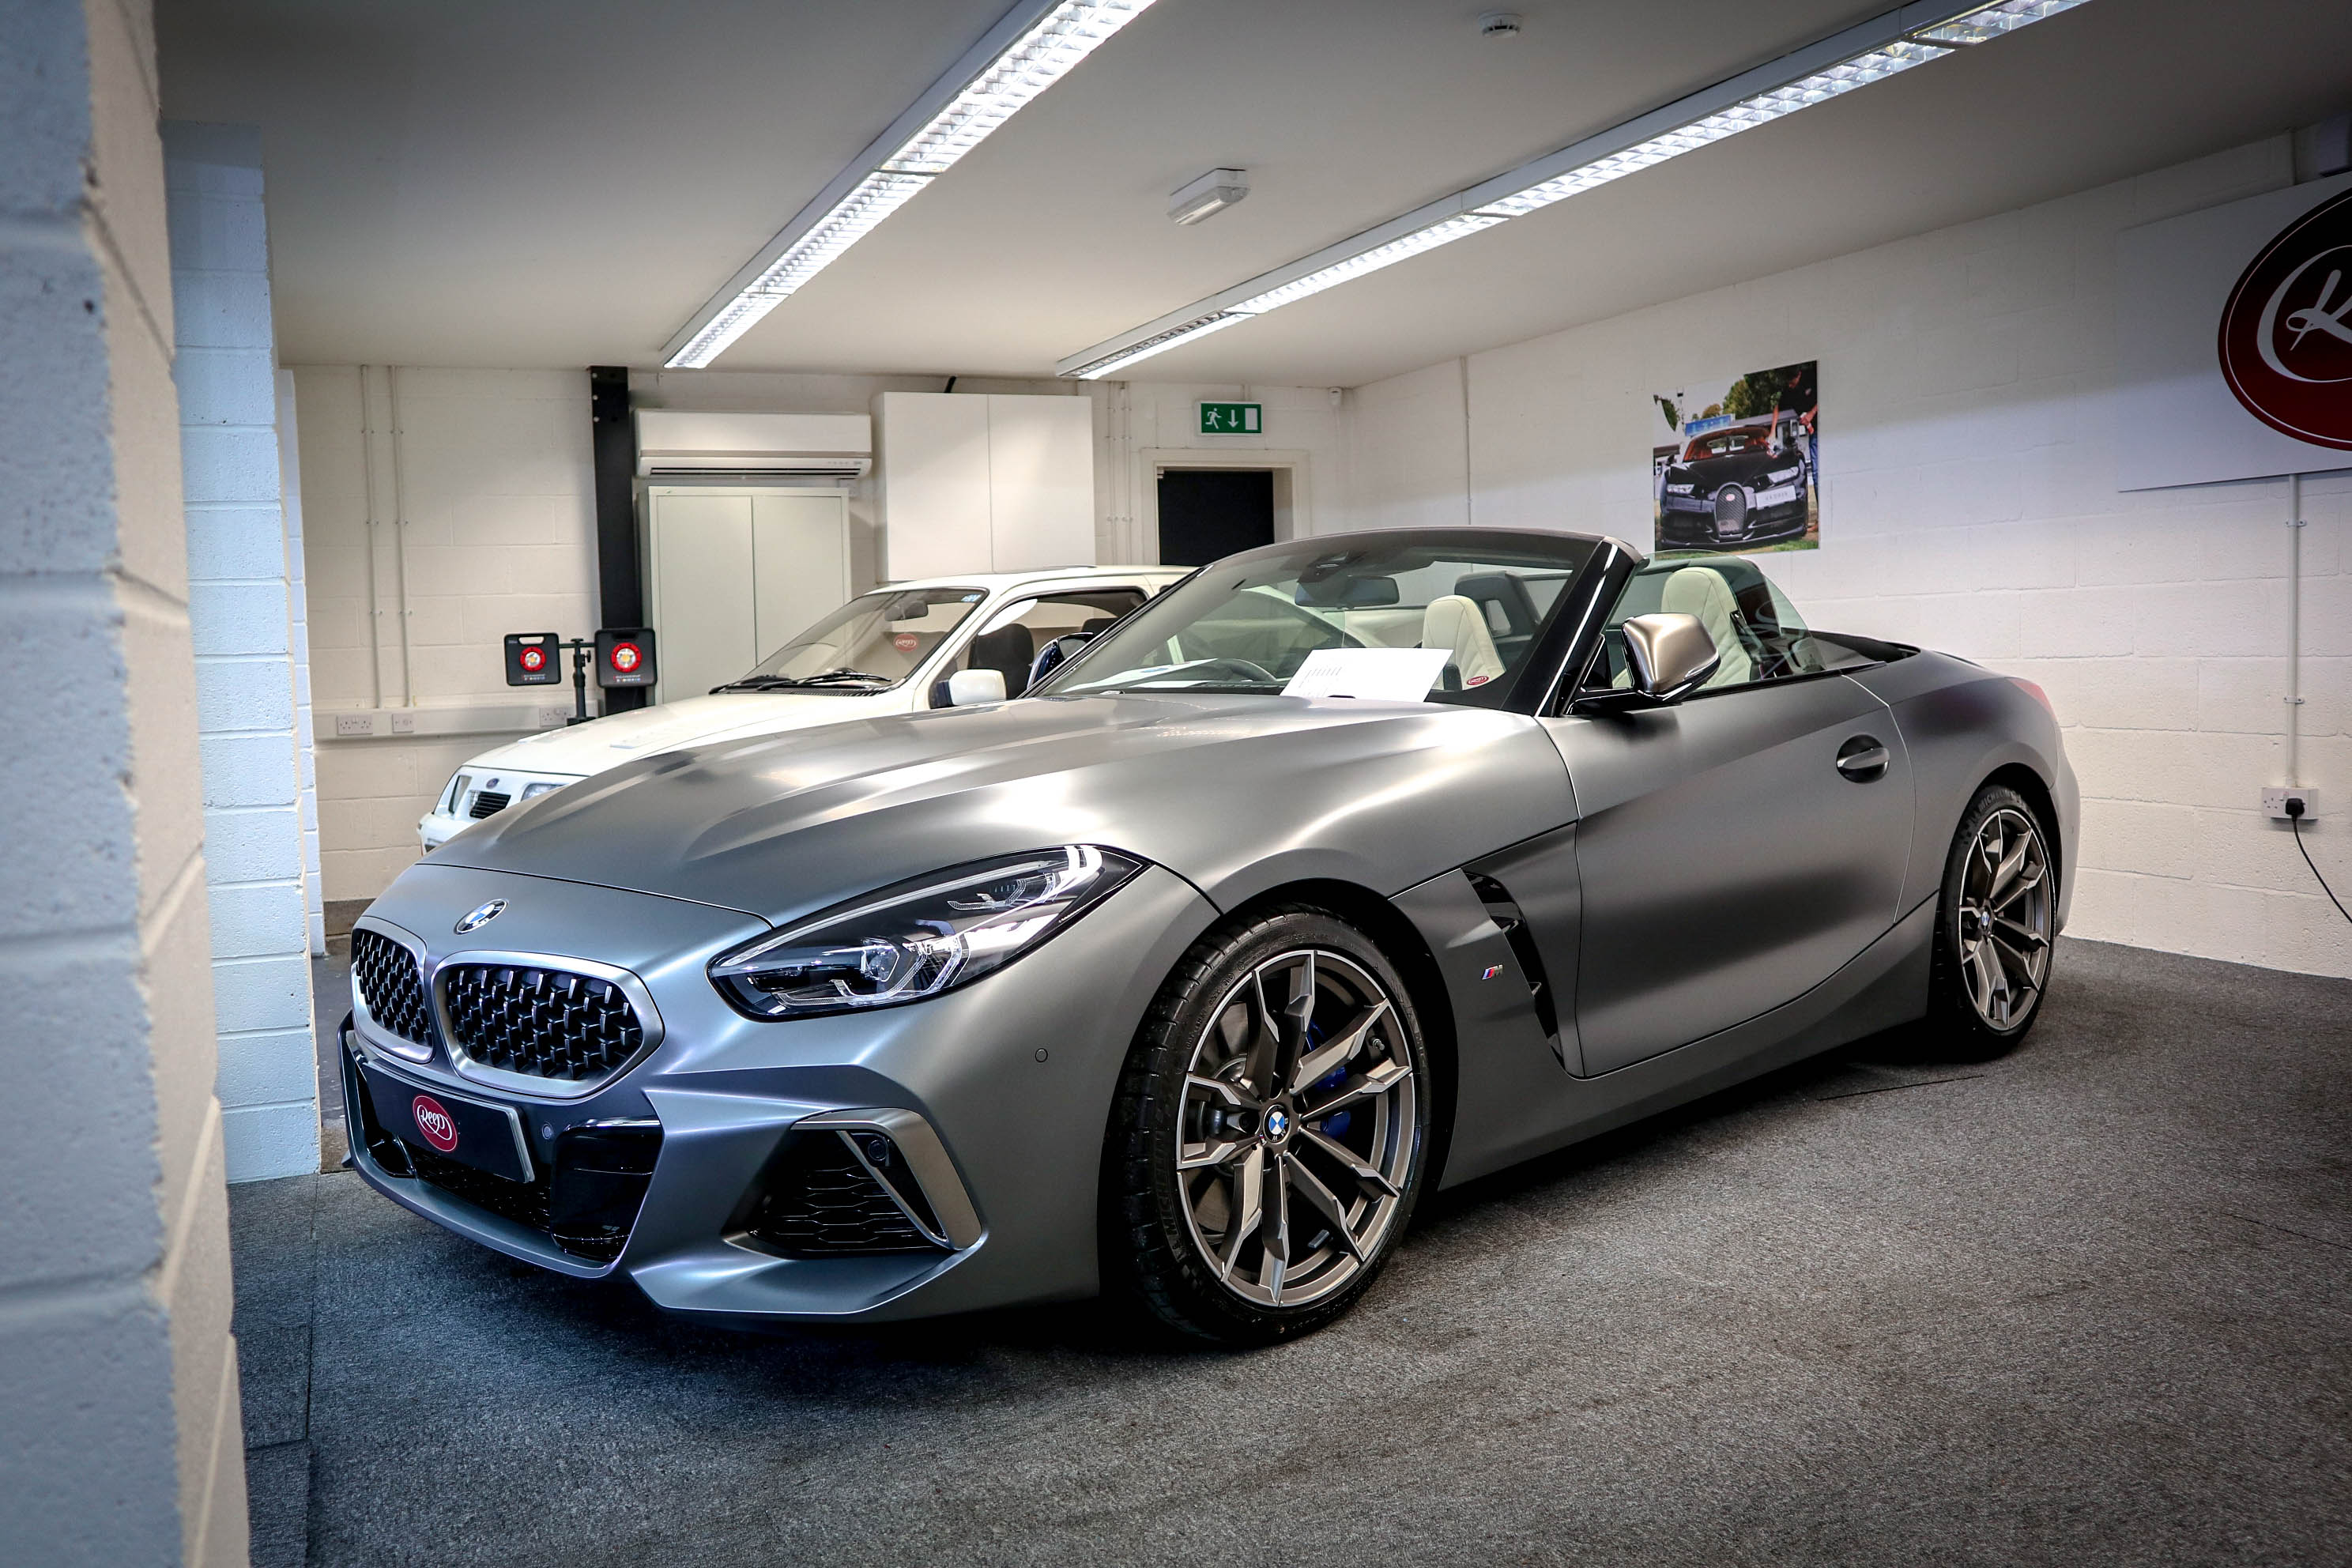 Facelift Bmw Z4 Frozen Grey Full Body Ppf Kit Reep Yorkshire